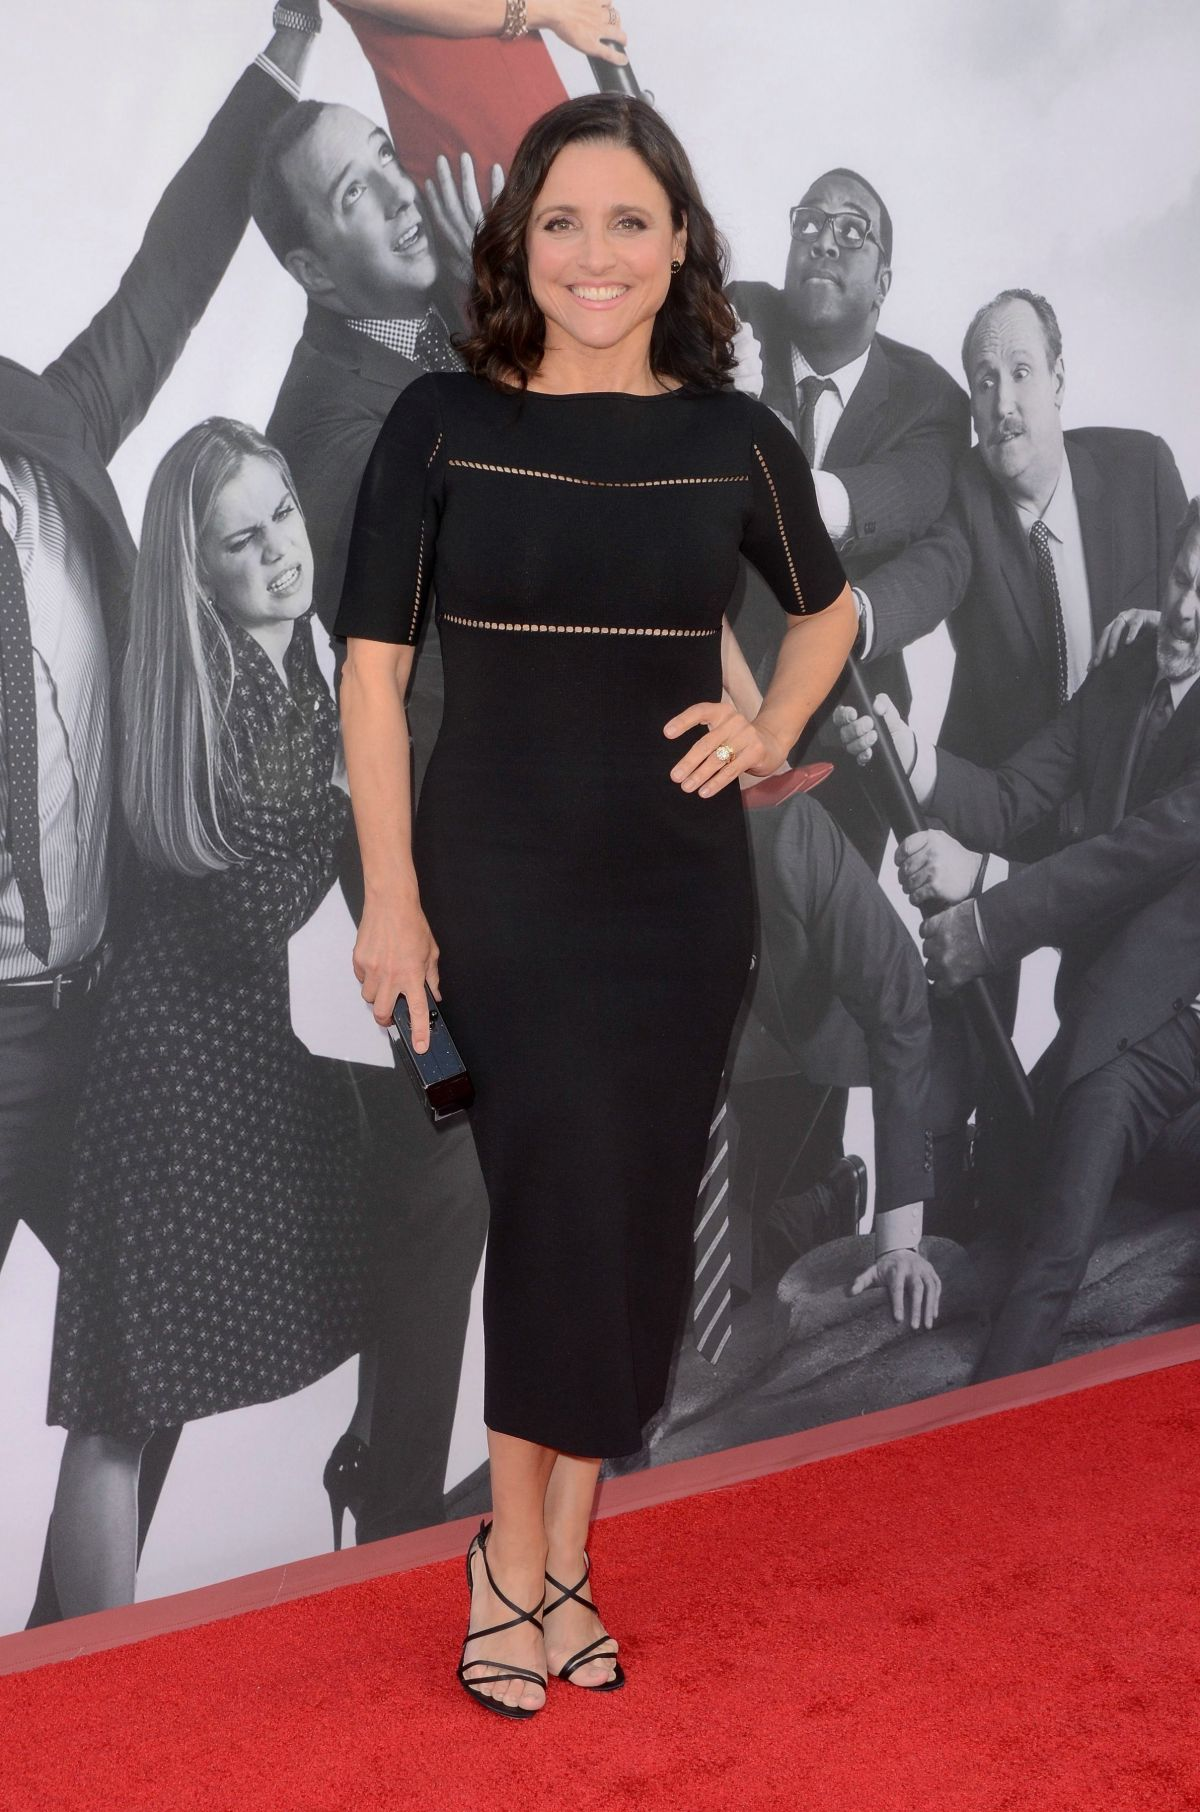 JULIA LOUIS-DREYFUS at Veep TV Show FYC Screening 05/25/2017